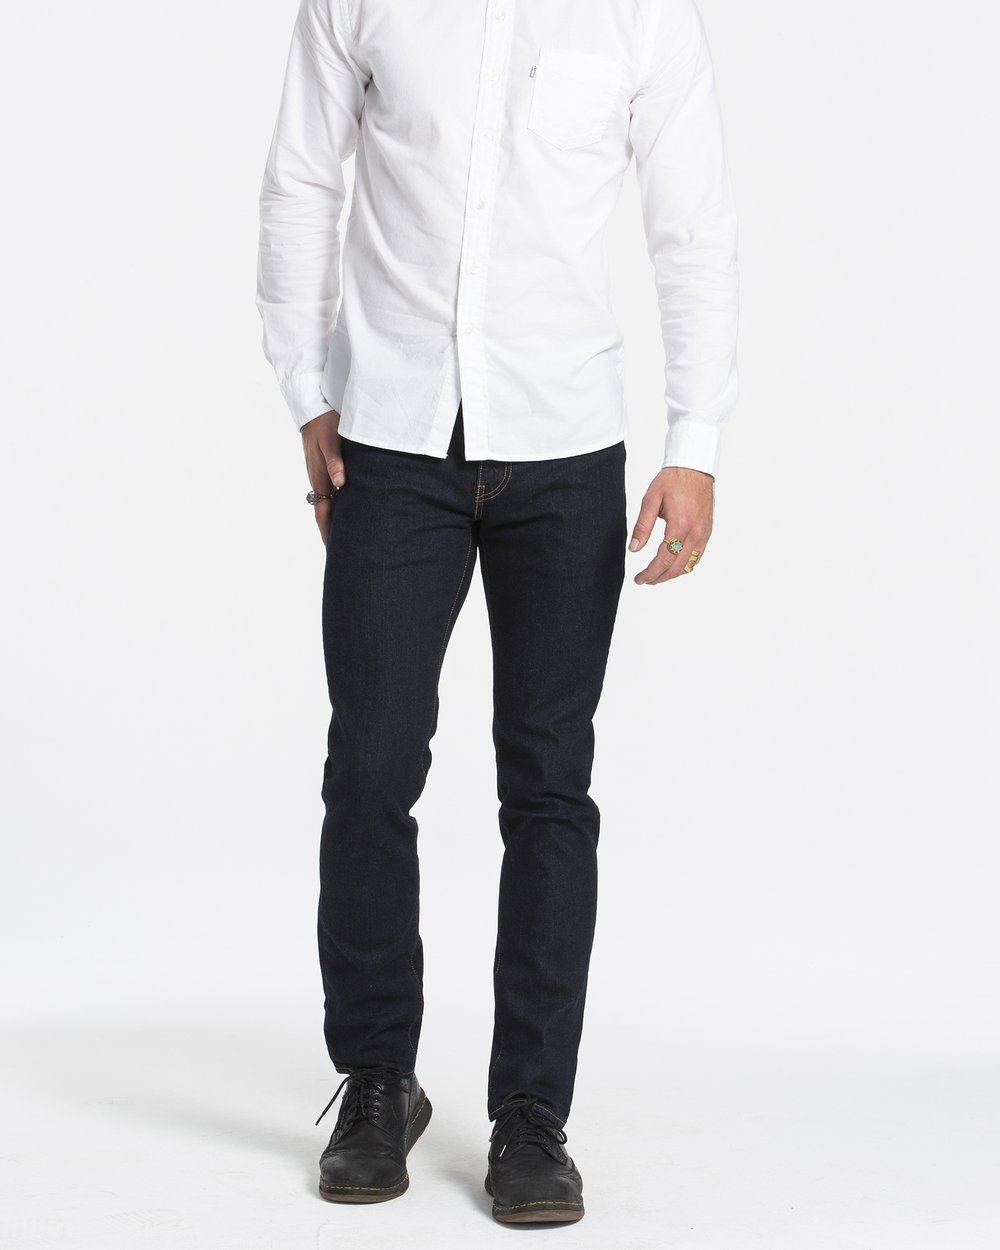 916f01eee718 512 Slim Taper Fit Jeans by Levi s Online